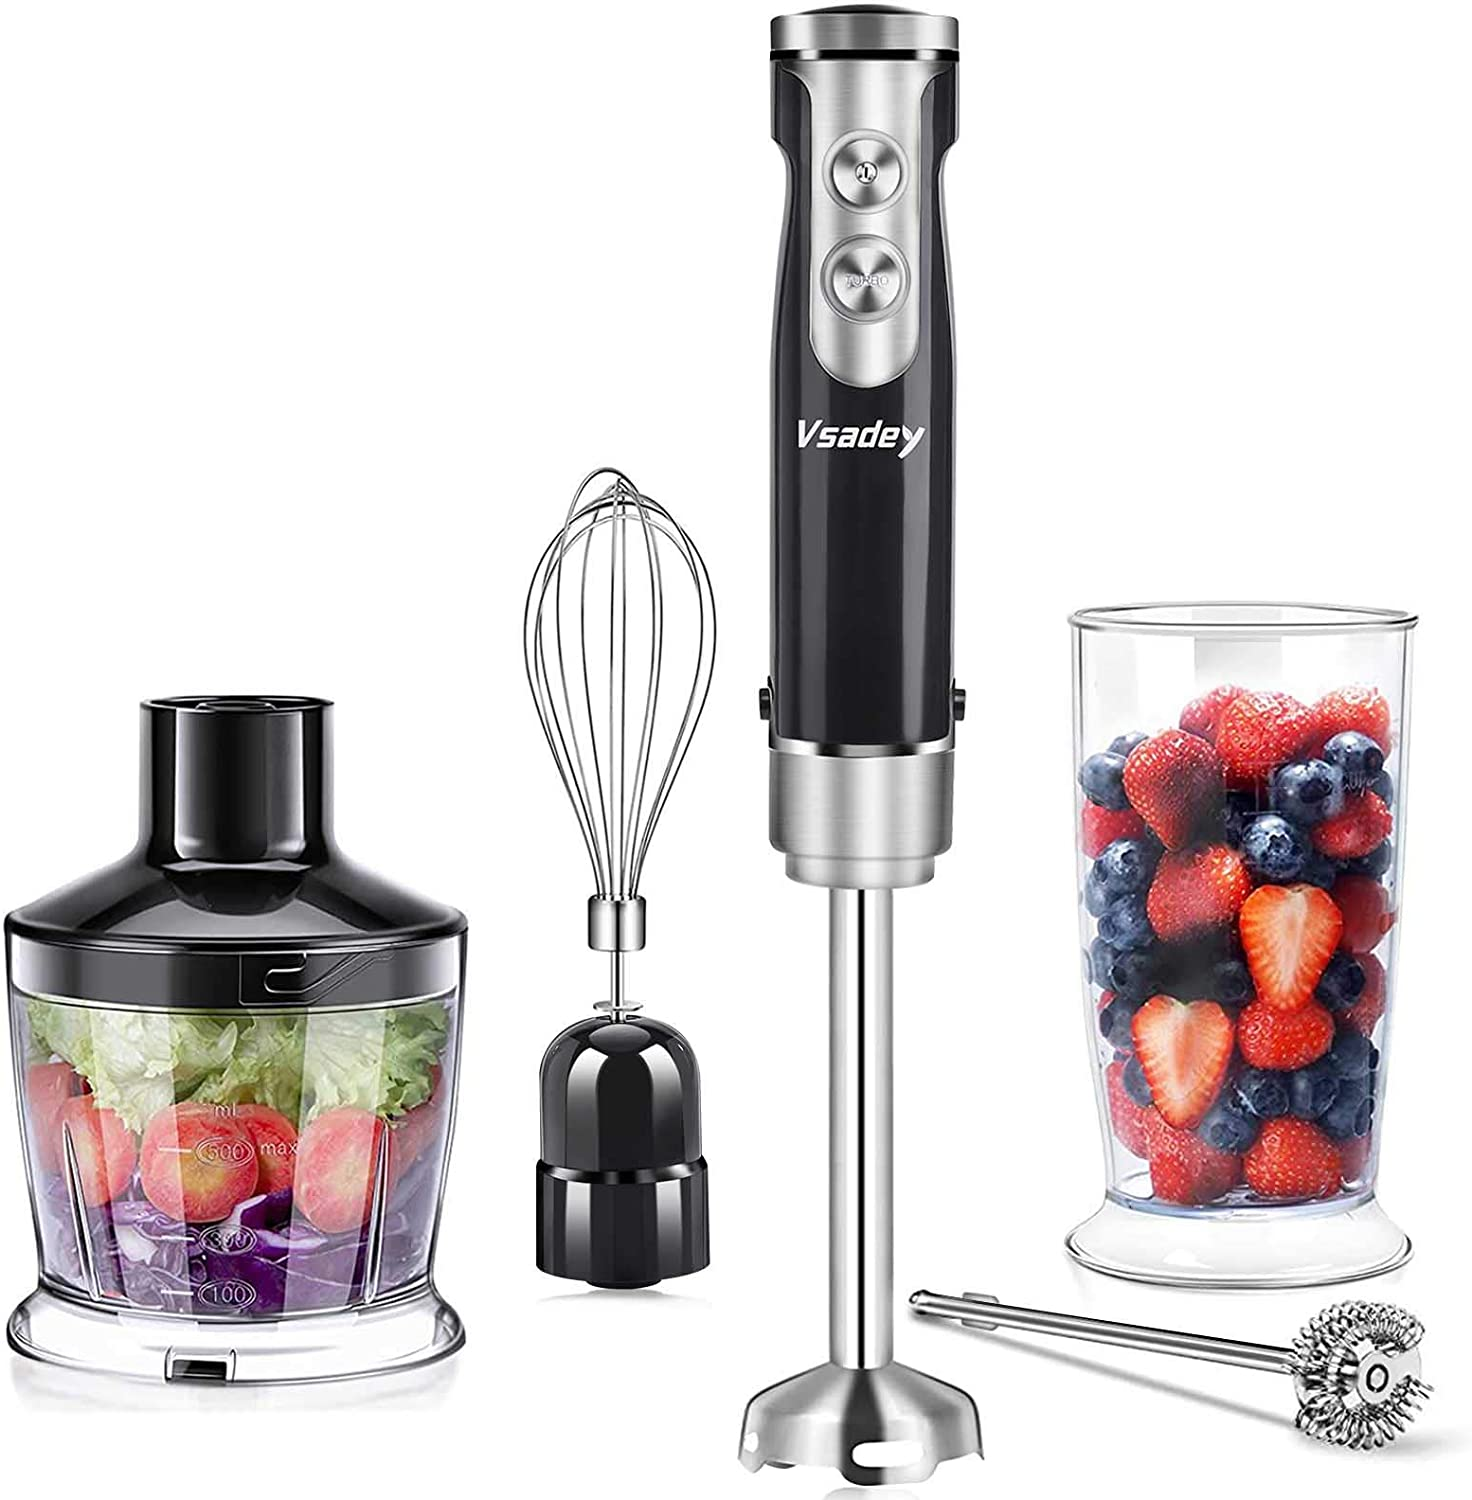 Immersion Hand Blender, VSADEY 5-in-1 9-Speed Stick Blender with 500ml Food Grinder, BPA-Free, 600ml Container, Milk Frother, Egg Whisk, Puree Infant Food, Smoothie, Sauce and Soup